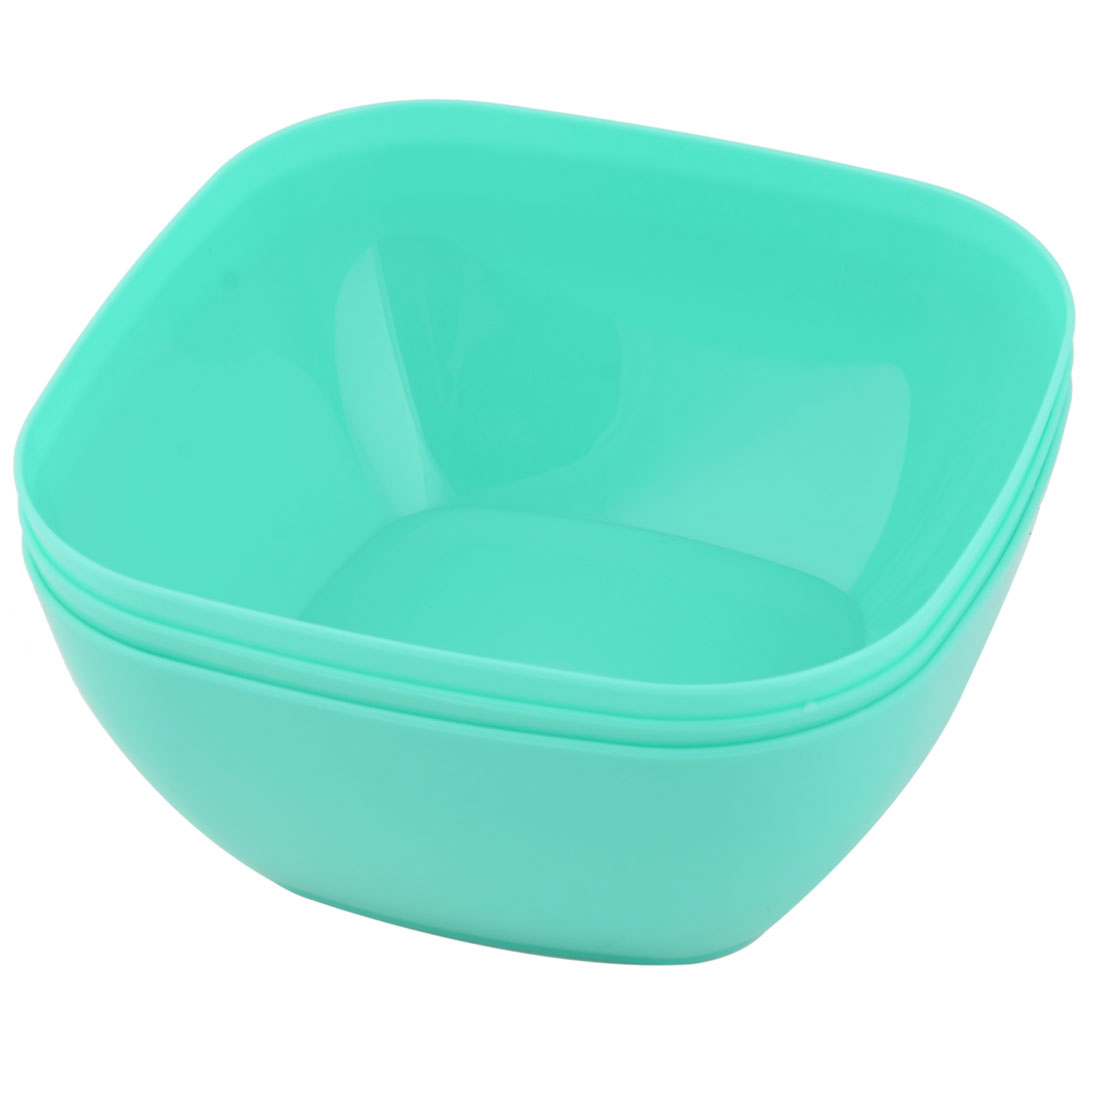 Home Refrigerator Plastic Square Fruit Foods Container Snacks Bowl Cyan 3pcs